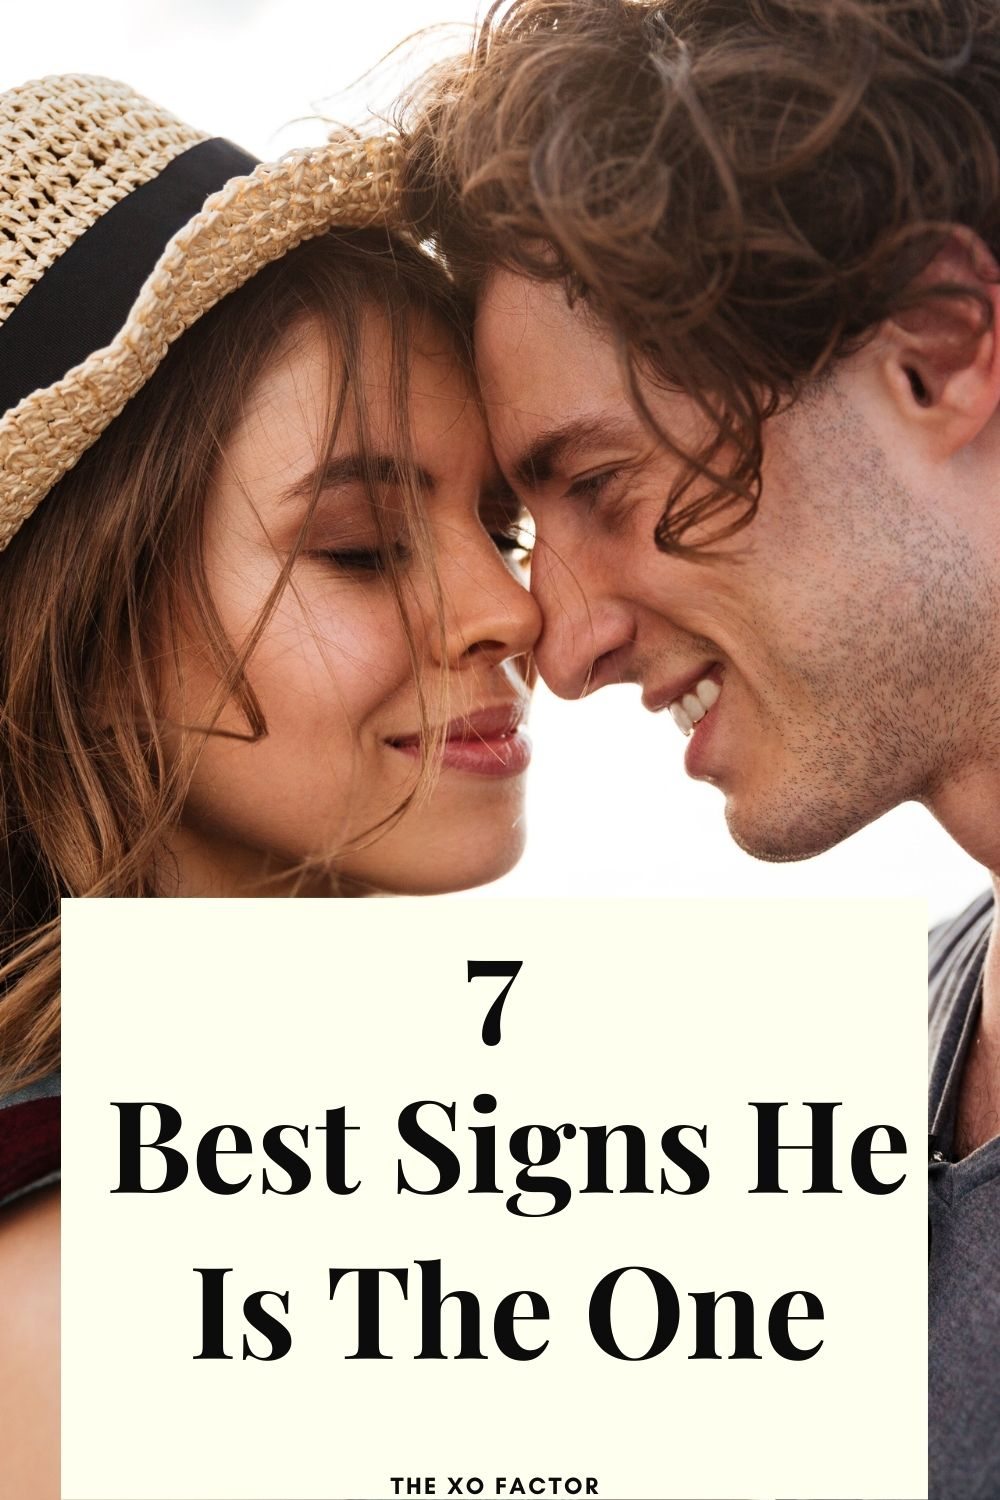 7 best signs he is the one